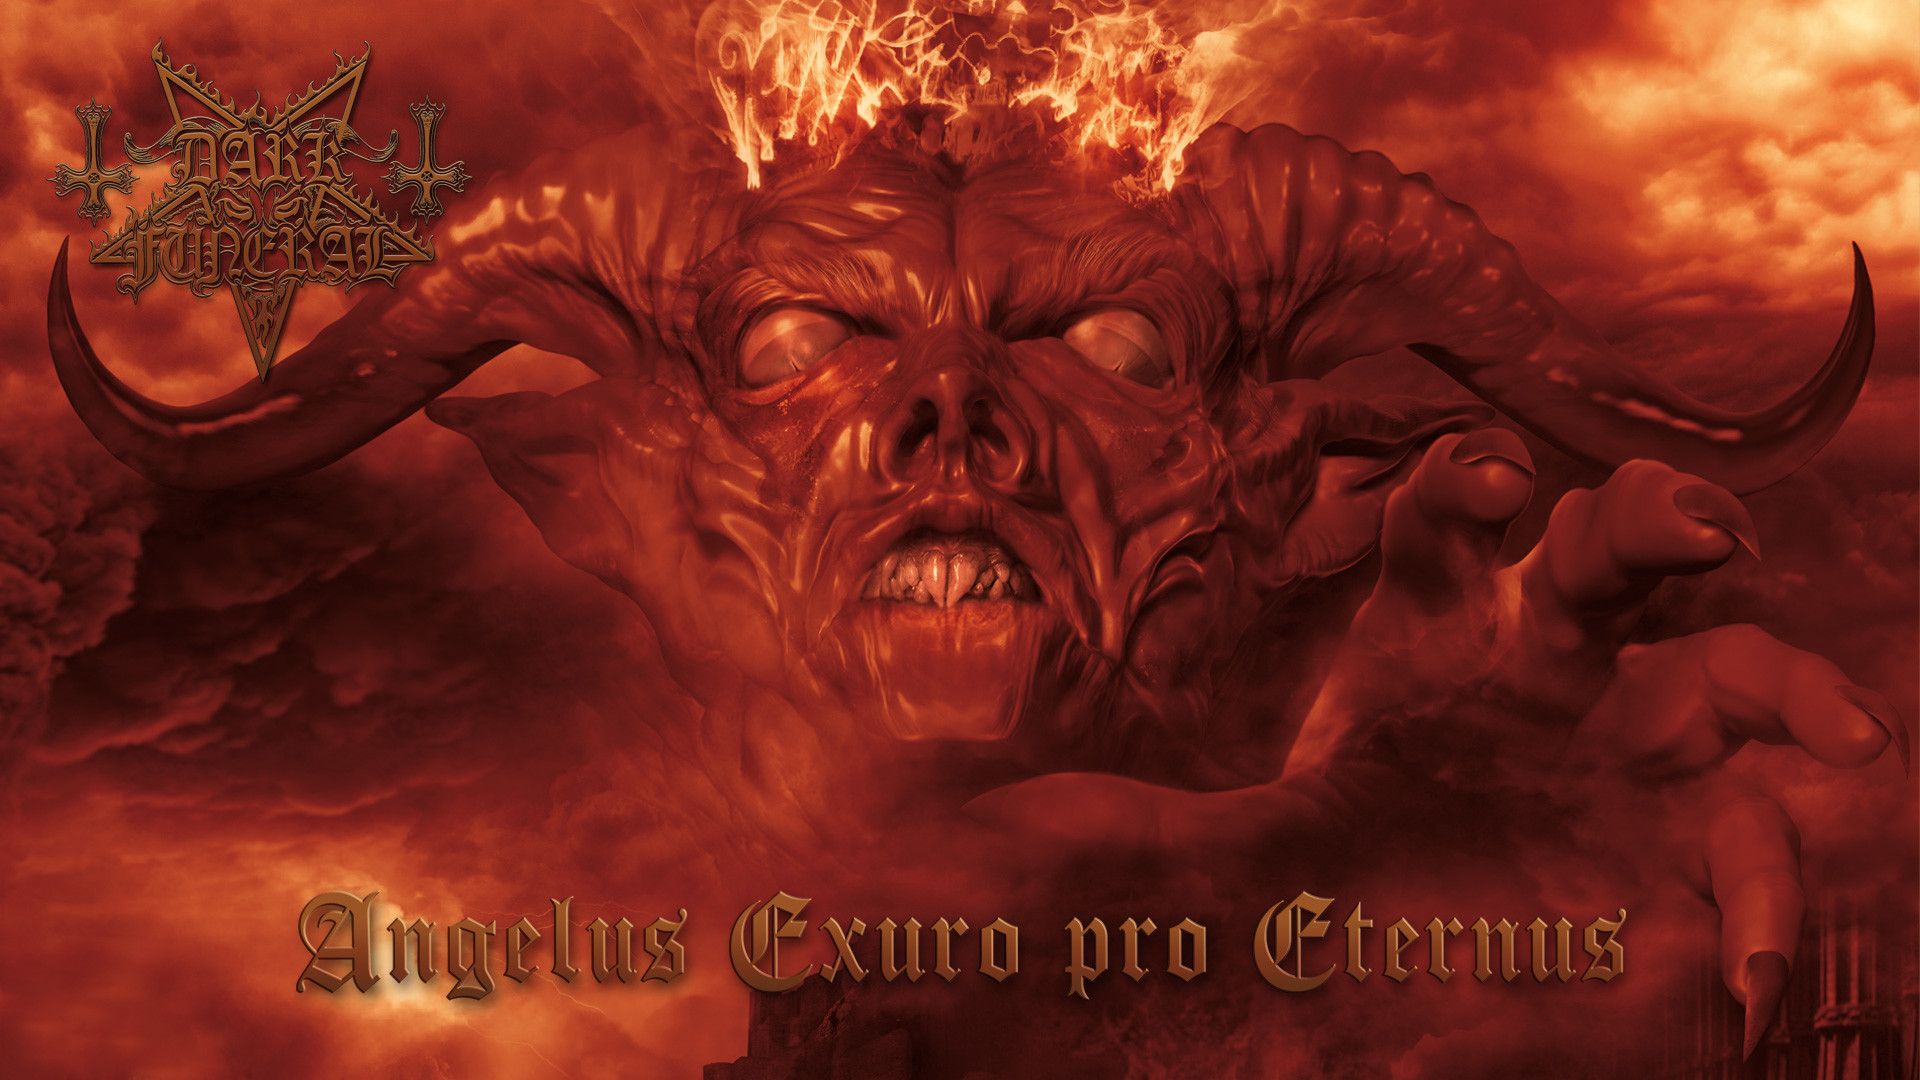 DARK FUNERAL black metal heavy hard rock band bands group groups dark demon  fire occult satan